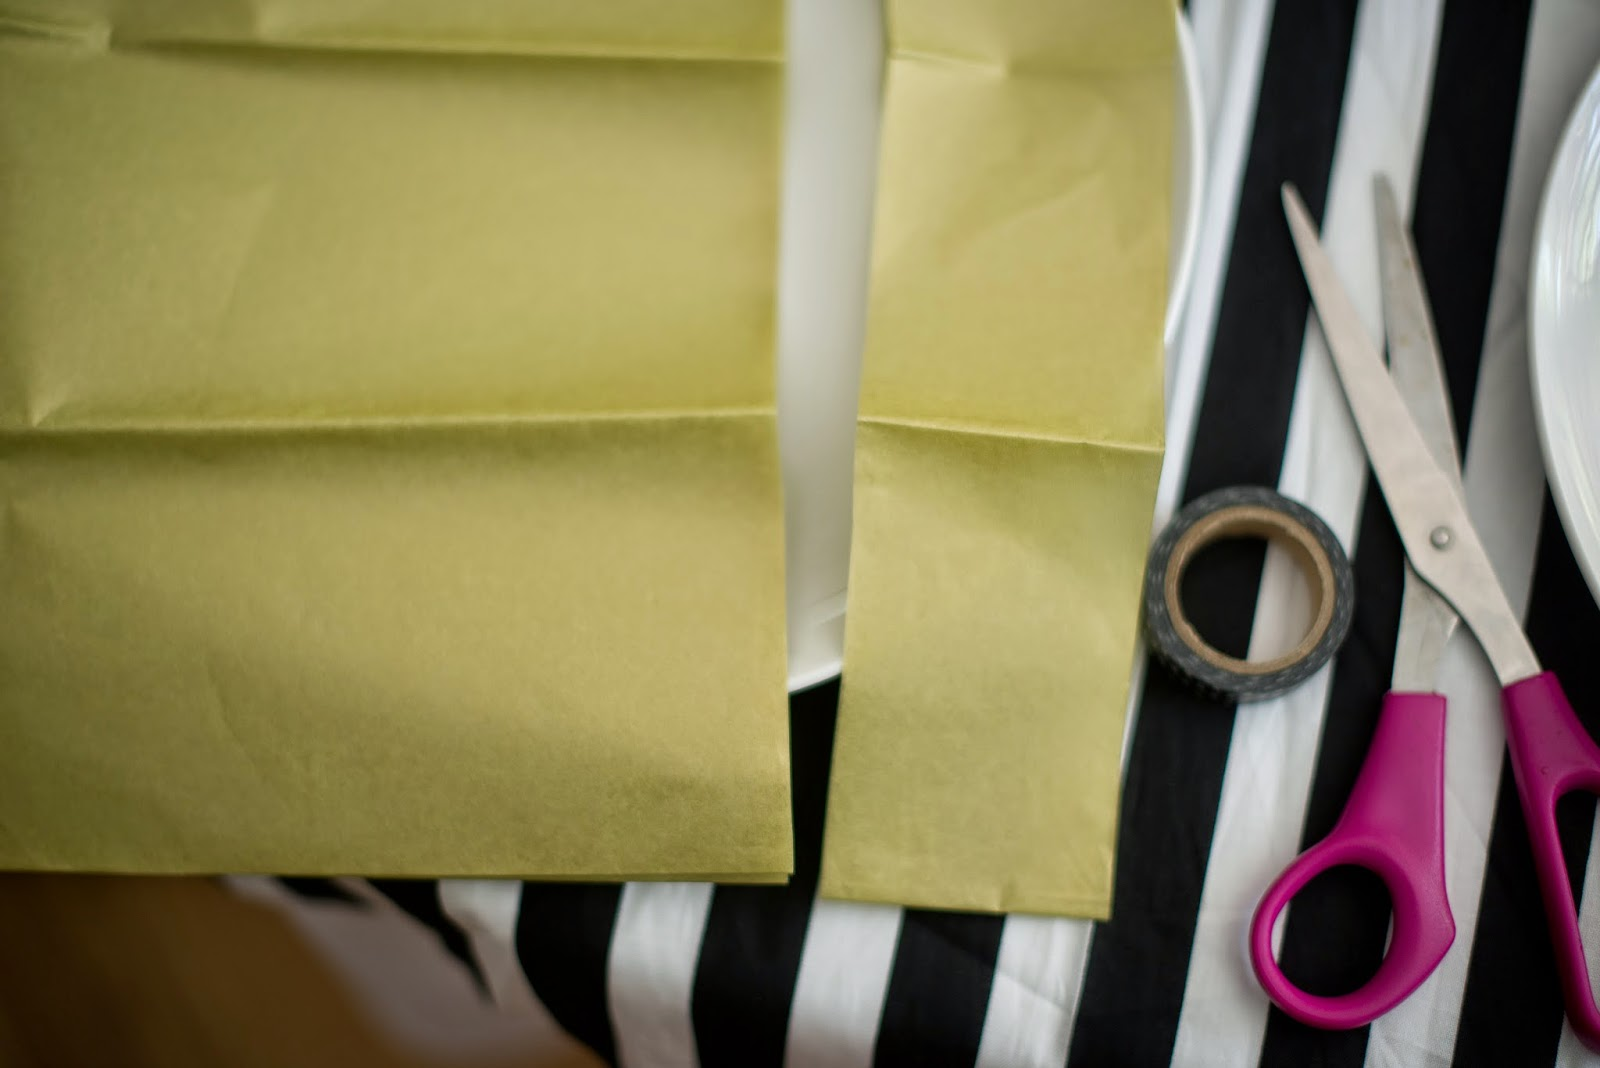 Tissue paper tassel tutorial - For Each Drinking Cup I Made Up These Tissue Paper Tassels With Paper Straws As Stir Sticks It Was An Easy Diy That Helped Dress Up The Table Creating A